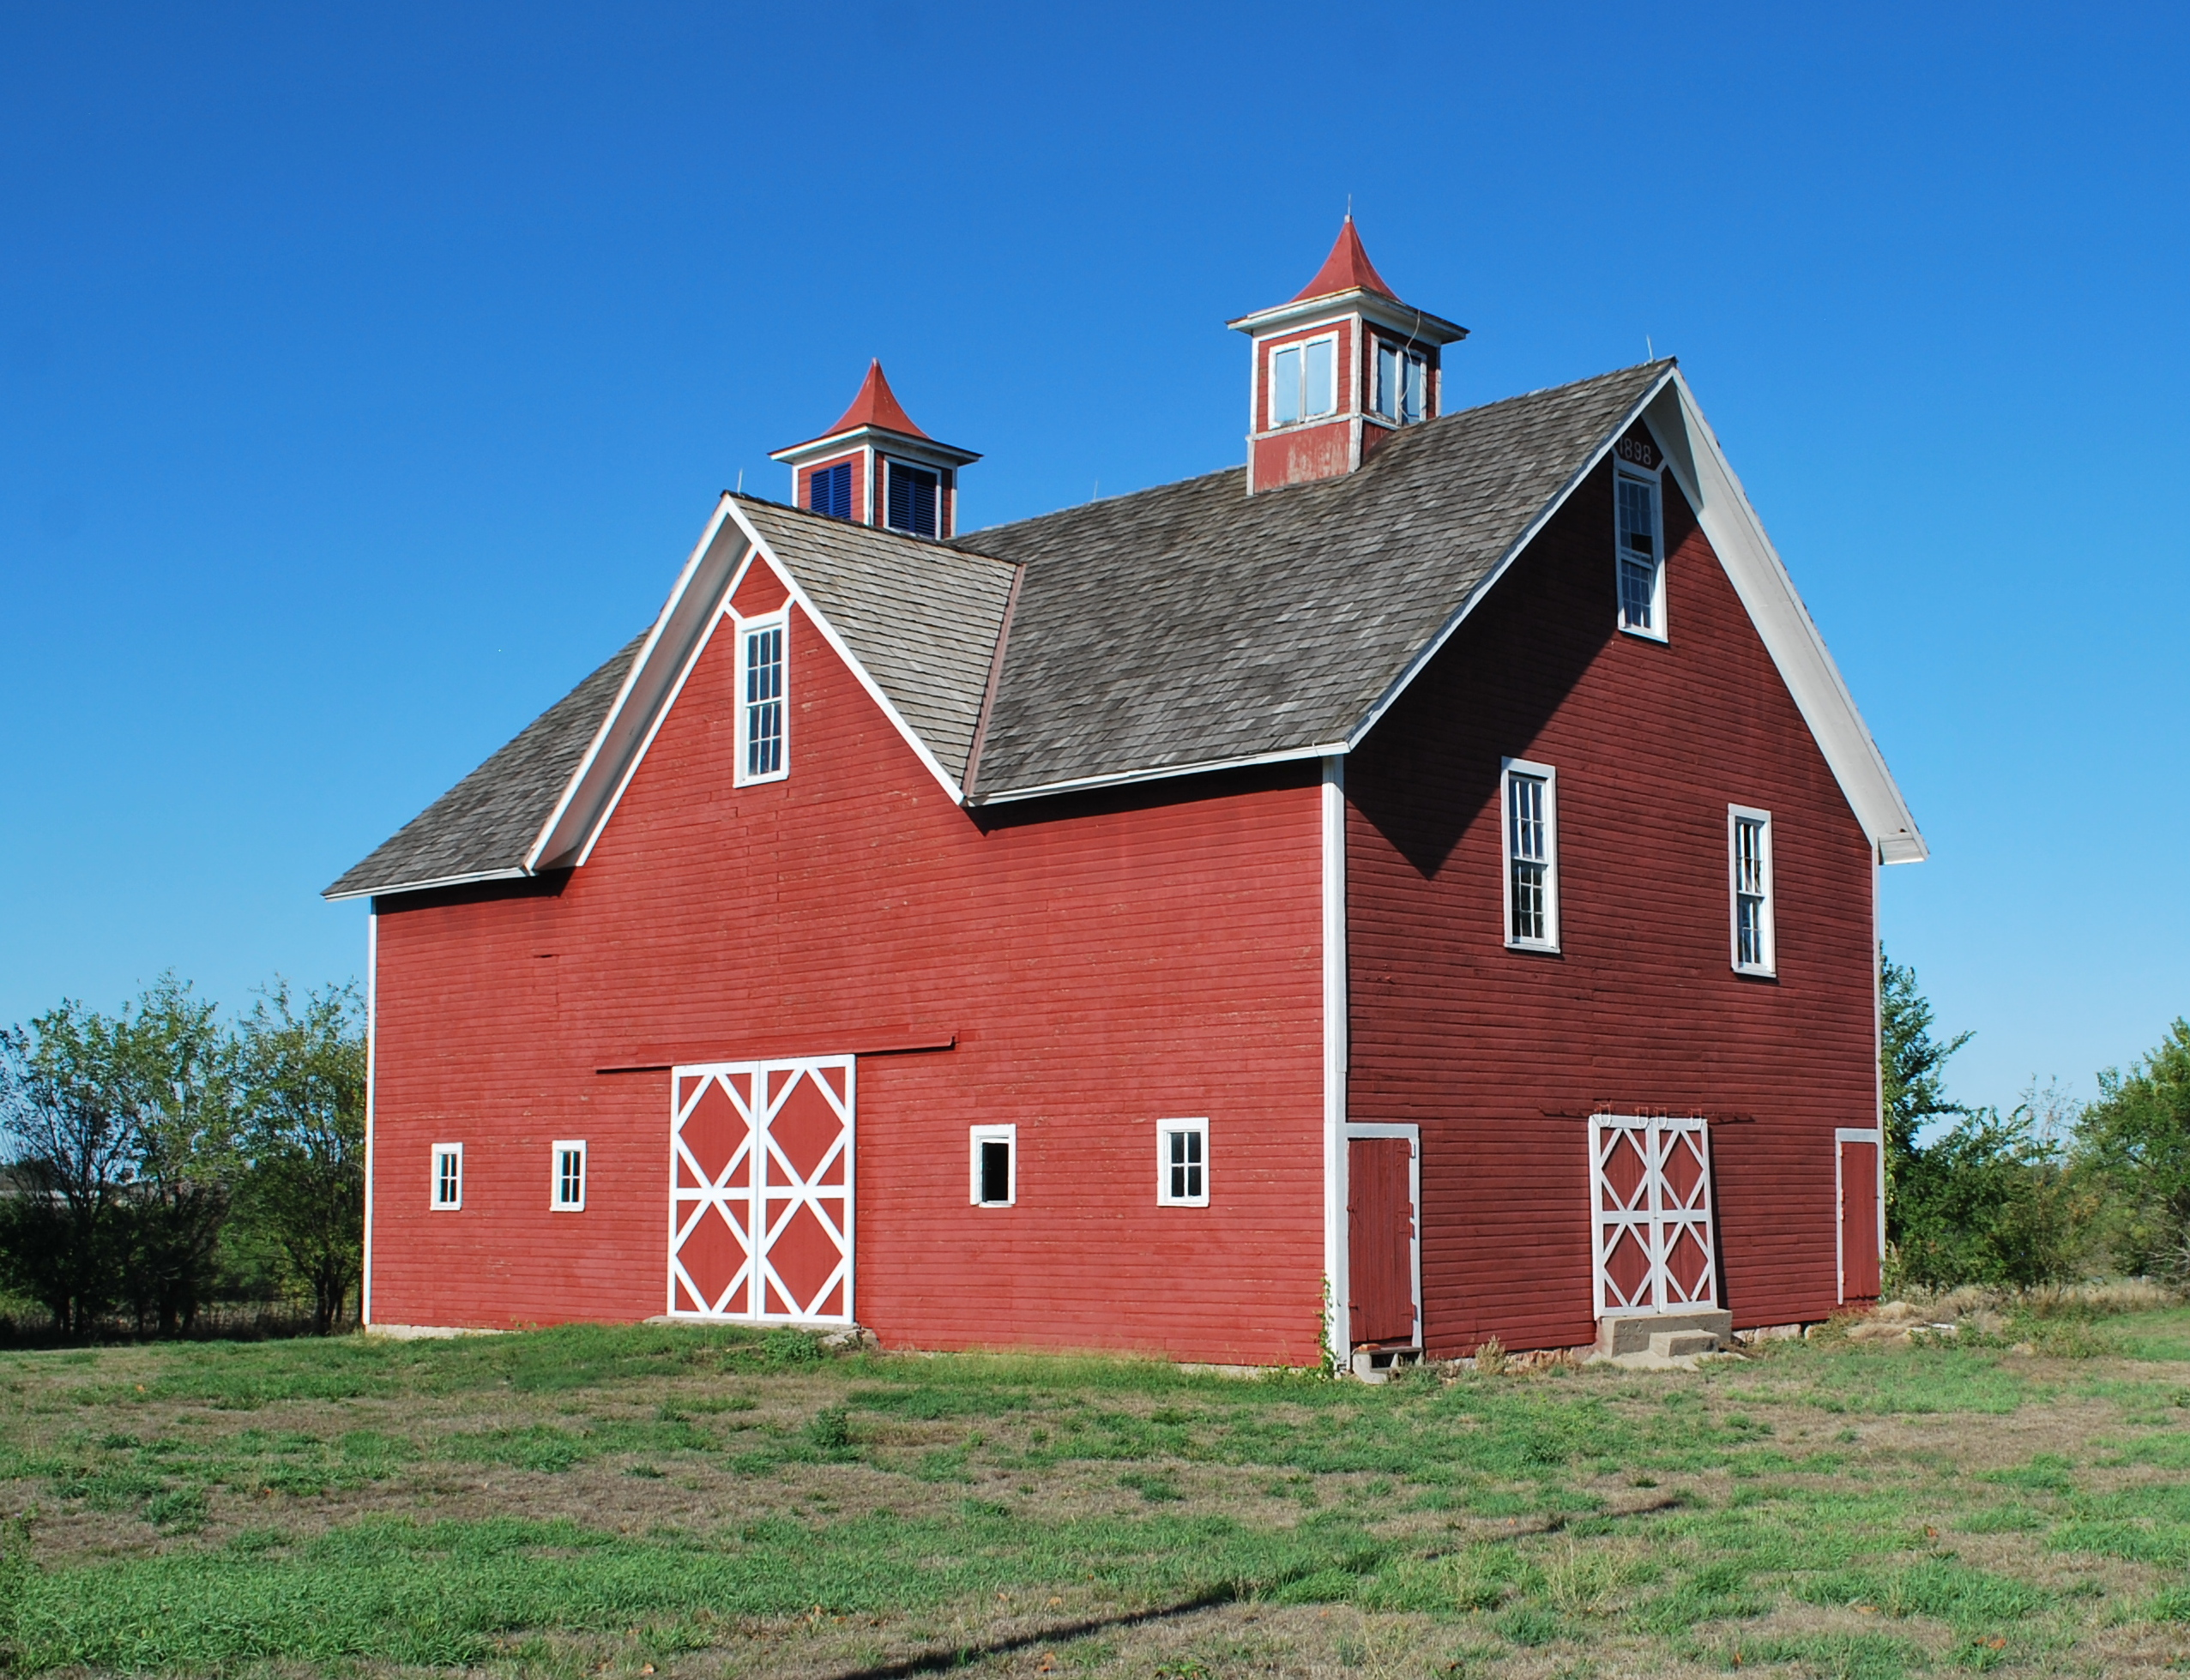 File:William Turner Barn.jpg - Wikimedia Commons